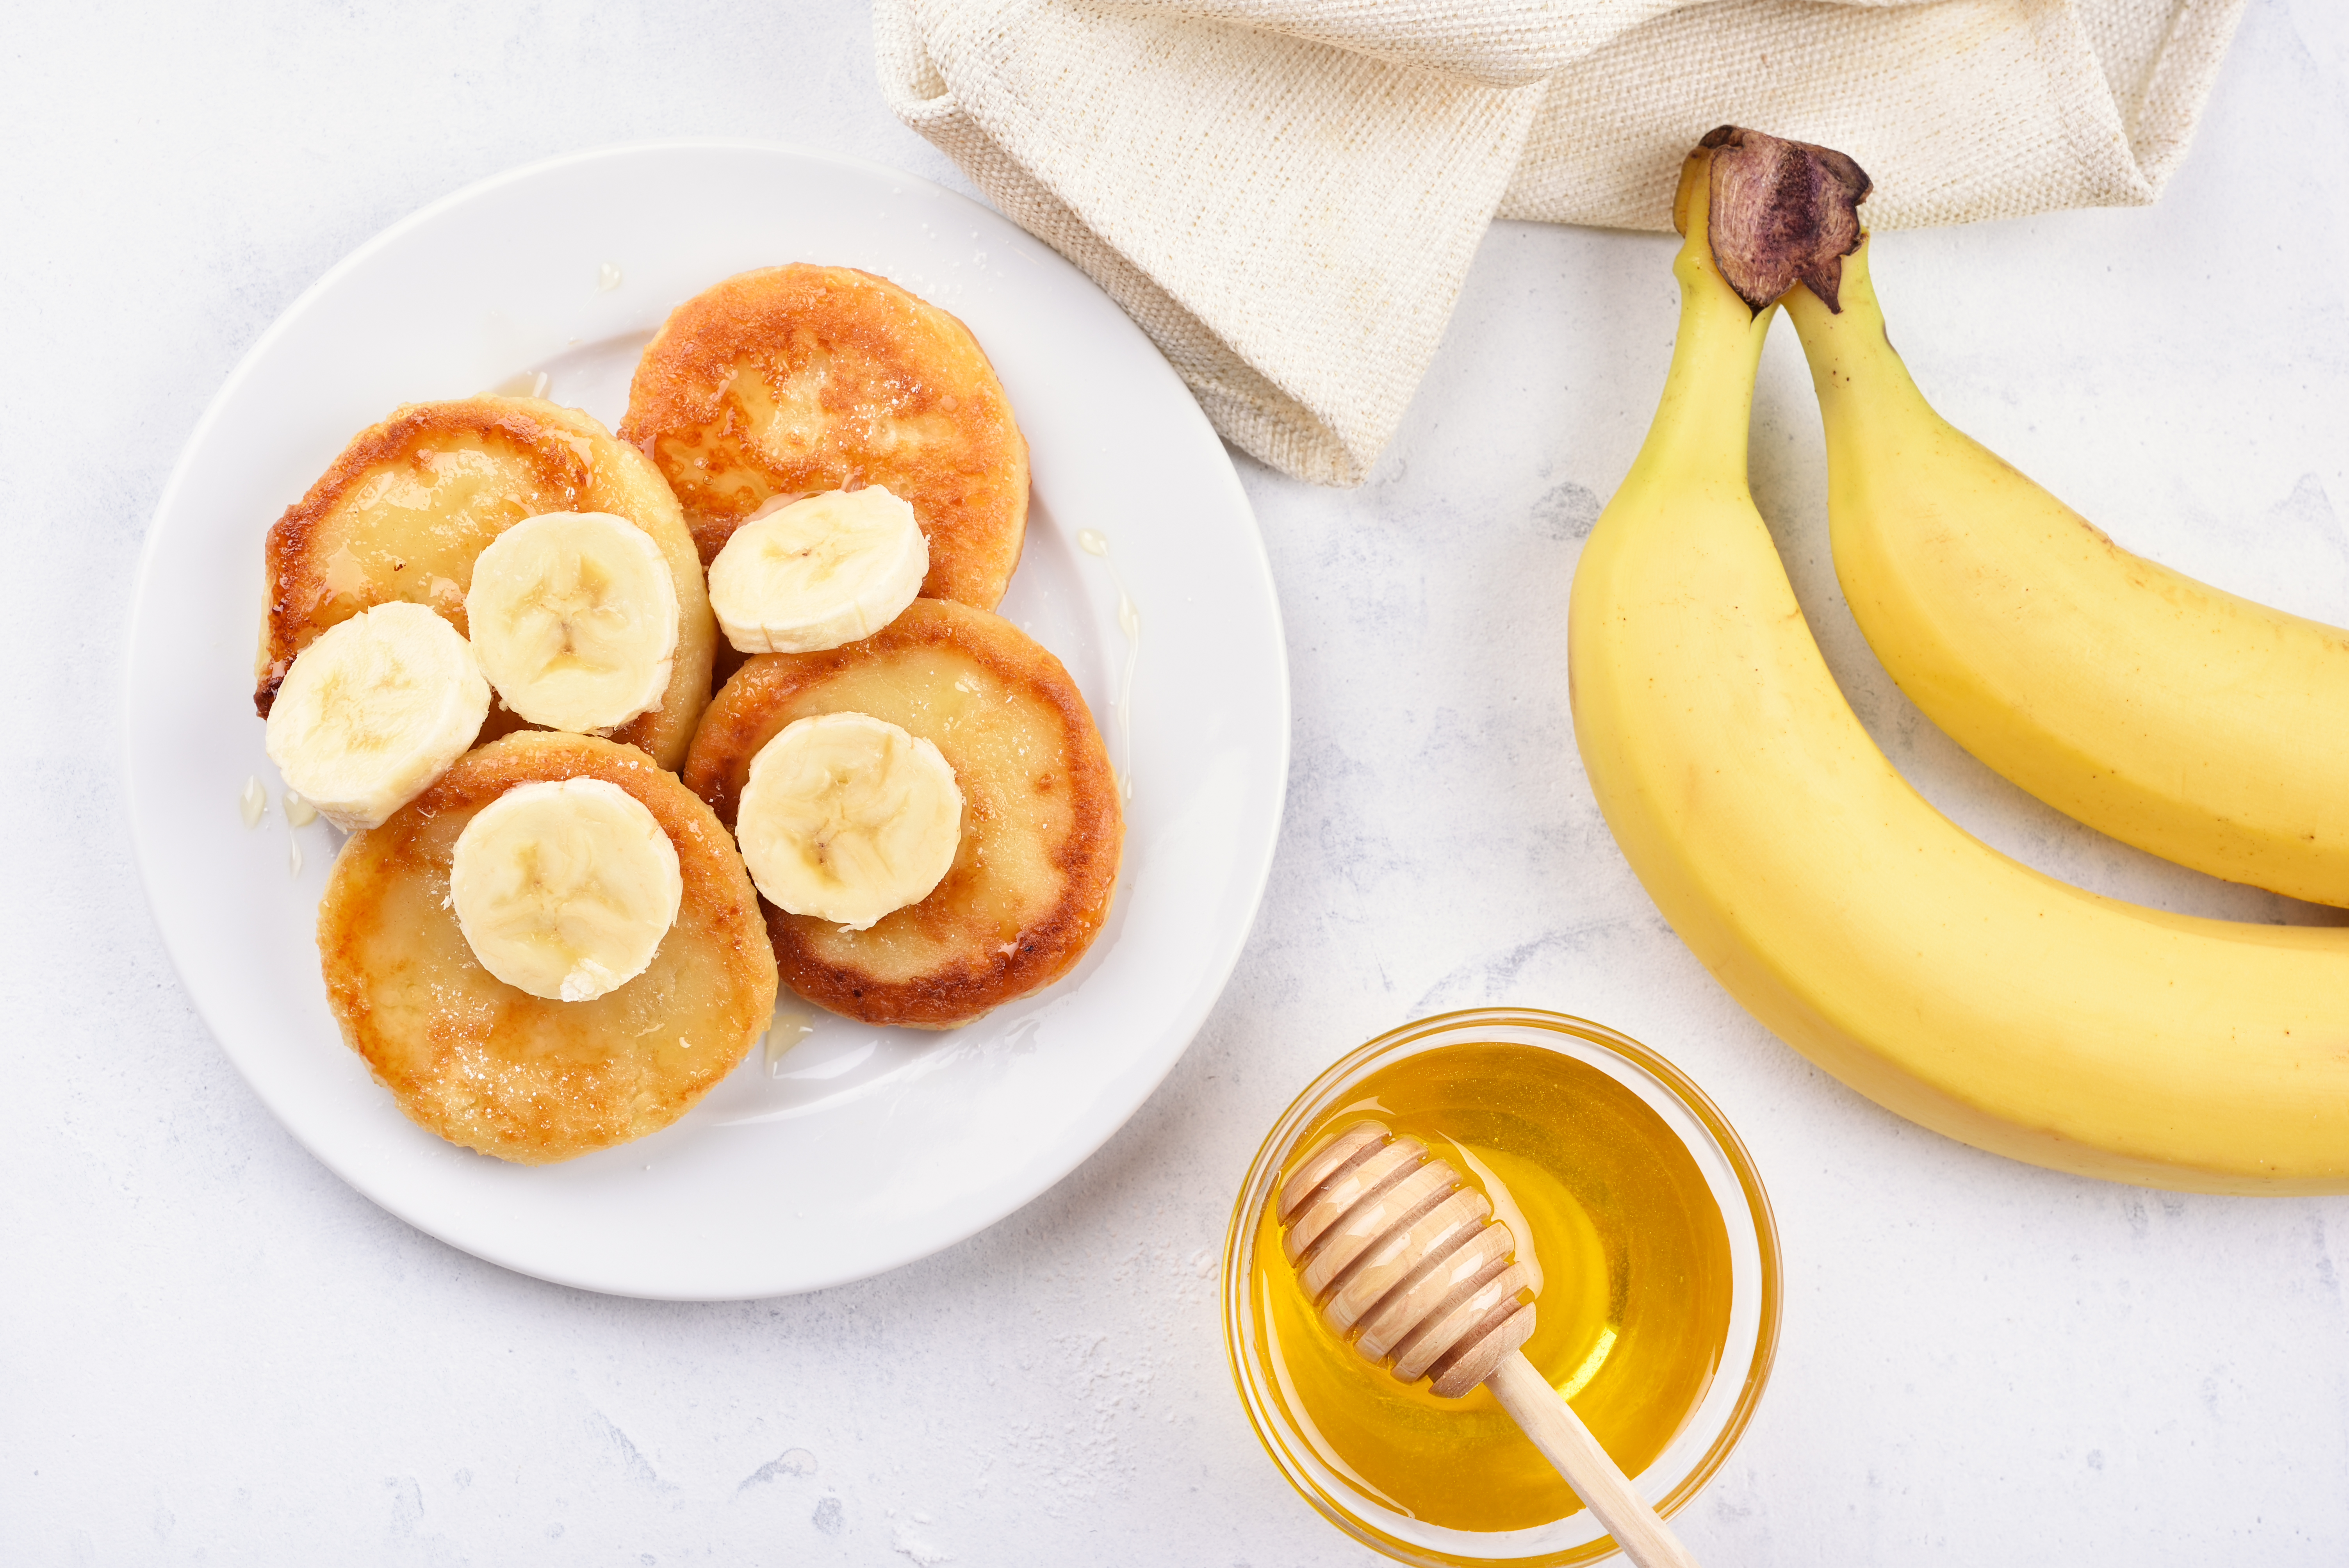 portion size of bananas | healthy eating | sf gate